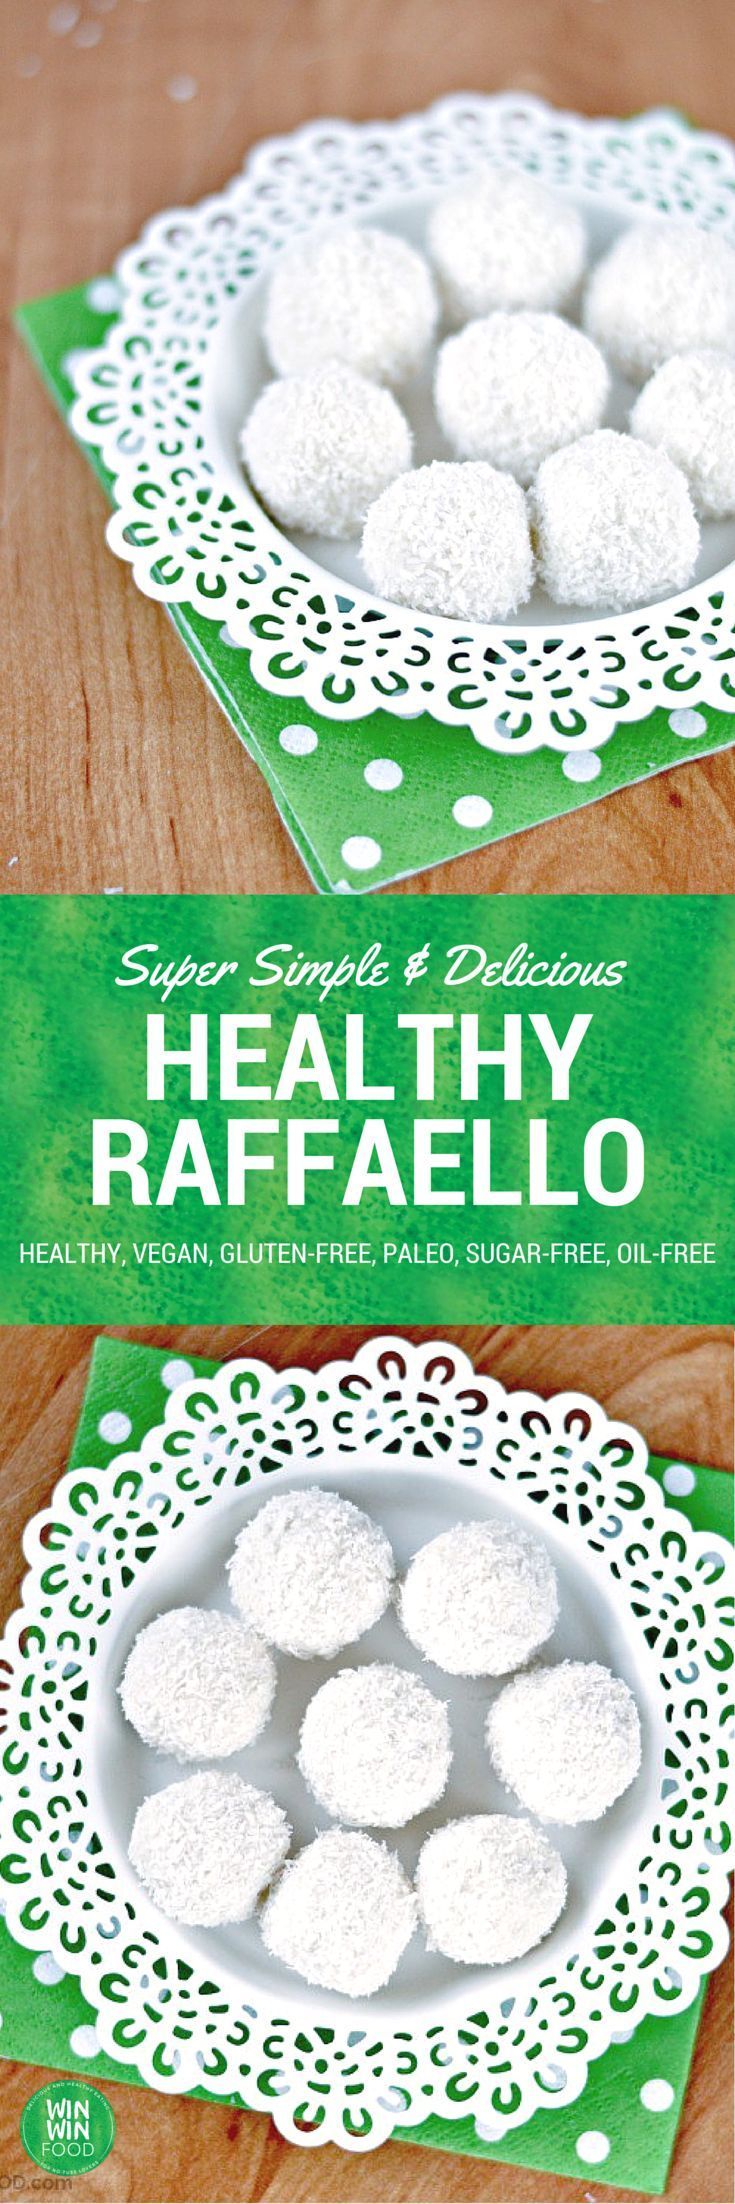 Healthy Raffaello | WIN-WINFOOD.com #healthy #vegan #sugarfree #glutenfree #oilfree #paleo